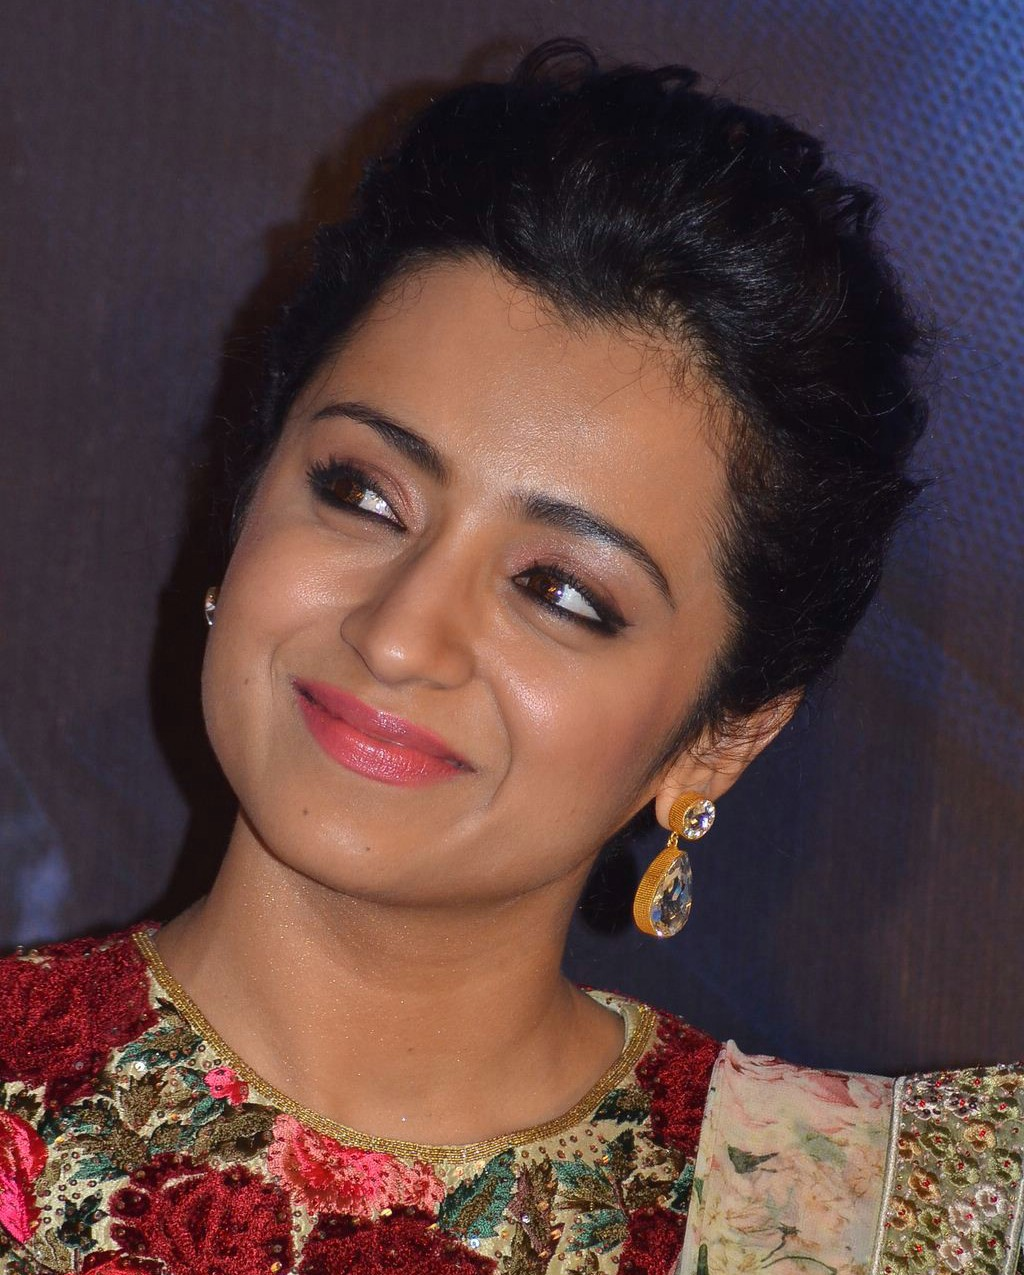 Tamil Actress Trisha Bathroom Pictures Images 28 Images